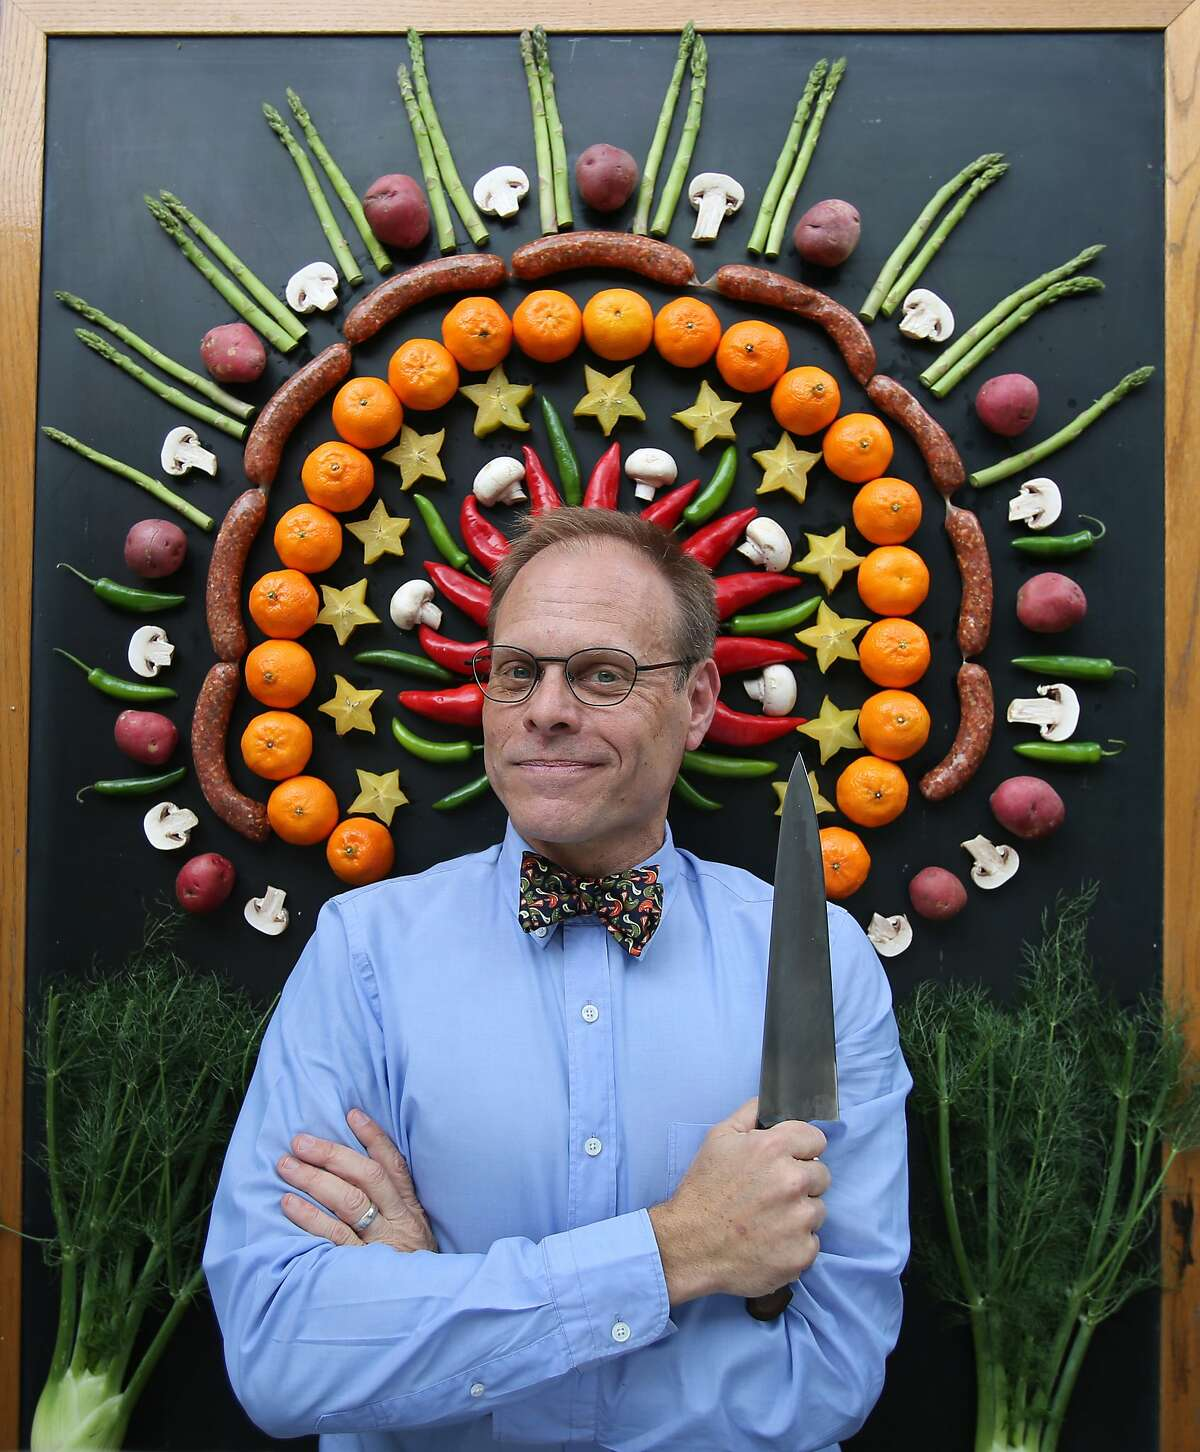 TV food celebrity Alton Brown is bringing a live show that includes music to theTobin Center for the Performing Arts tonight.